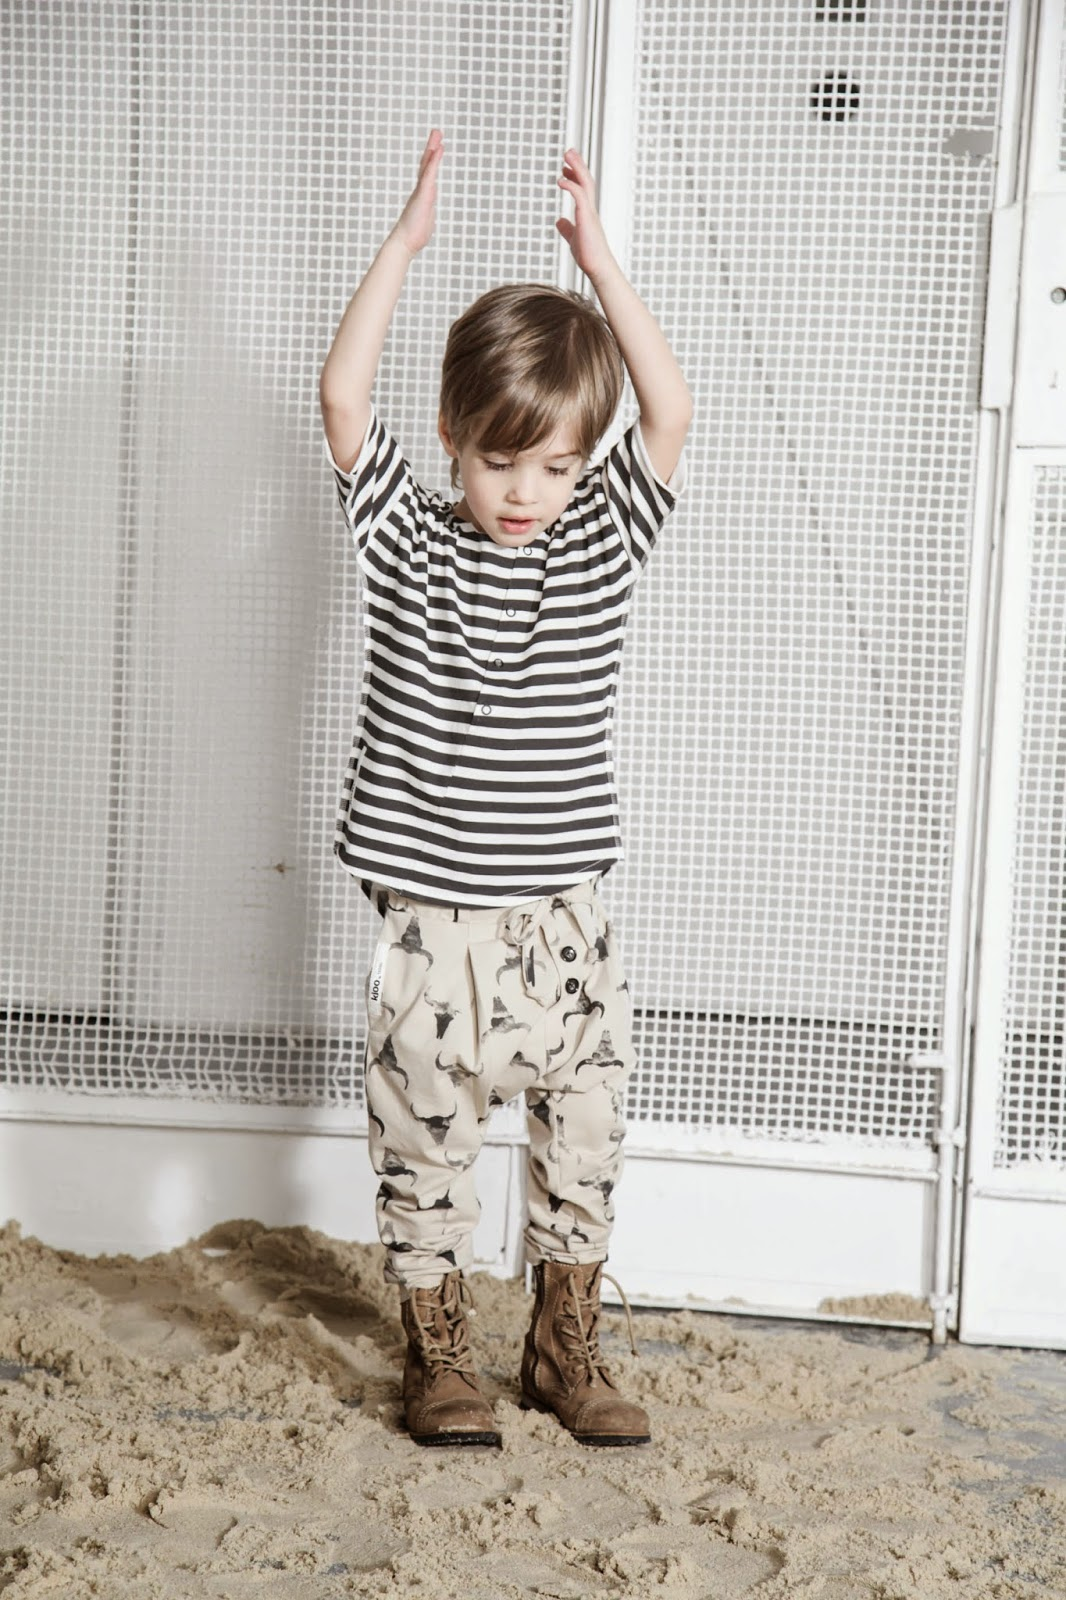 Kloo by Booso - Polish kids fashion spring-summer 2015 - baggy pants